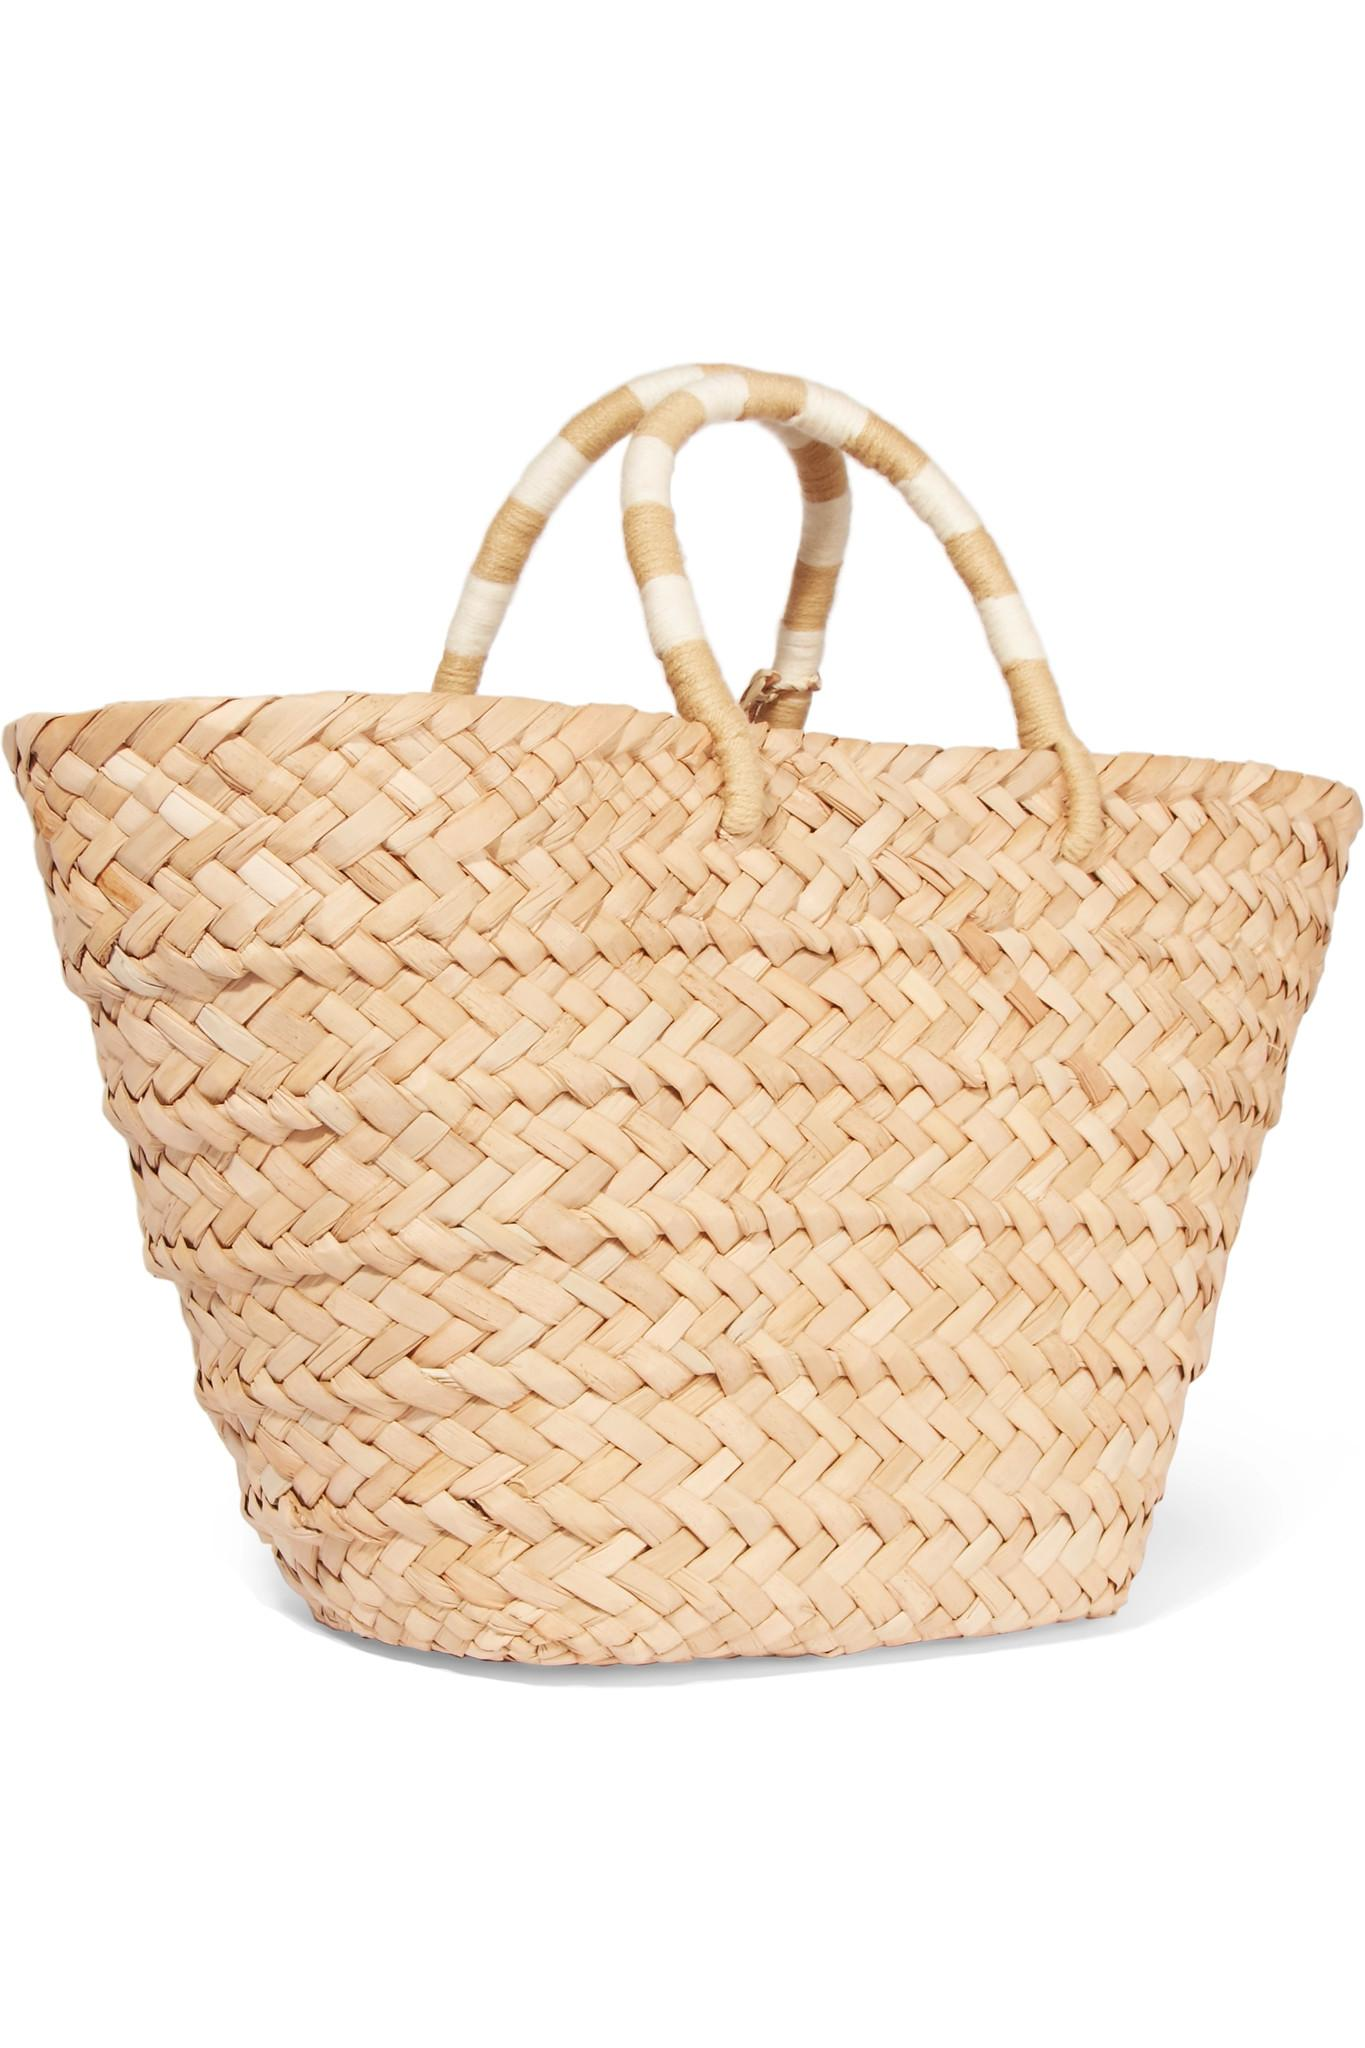 kayu st tropez pompom embellished woven seagrass tote in